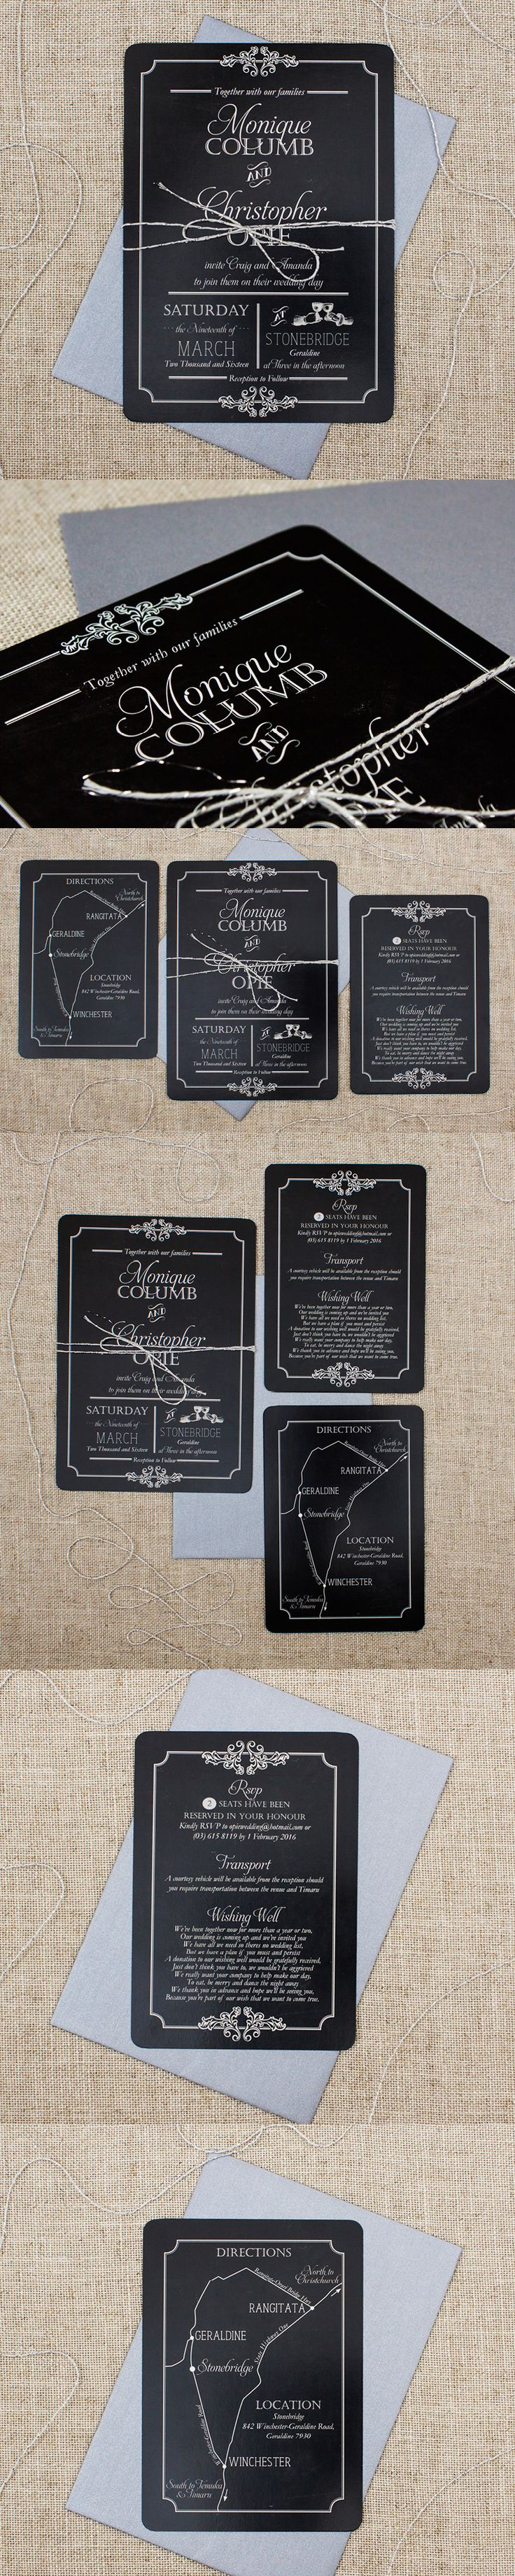 Chalk it Up: Chalkboard Wedding Invitation - Be My Guest